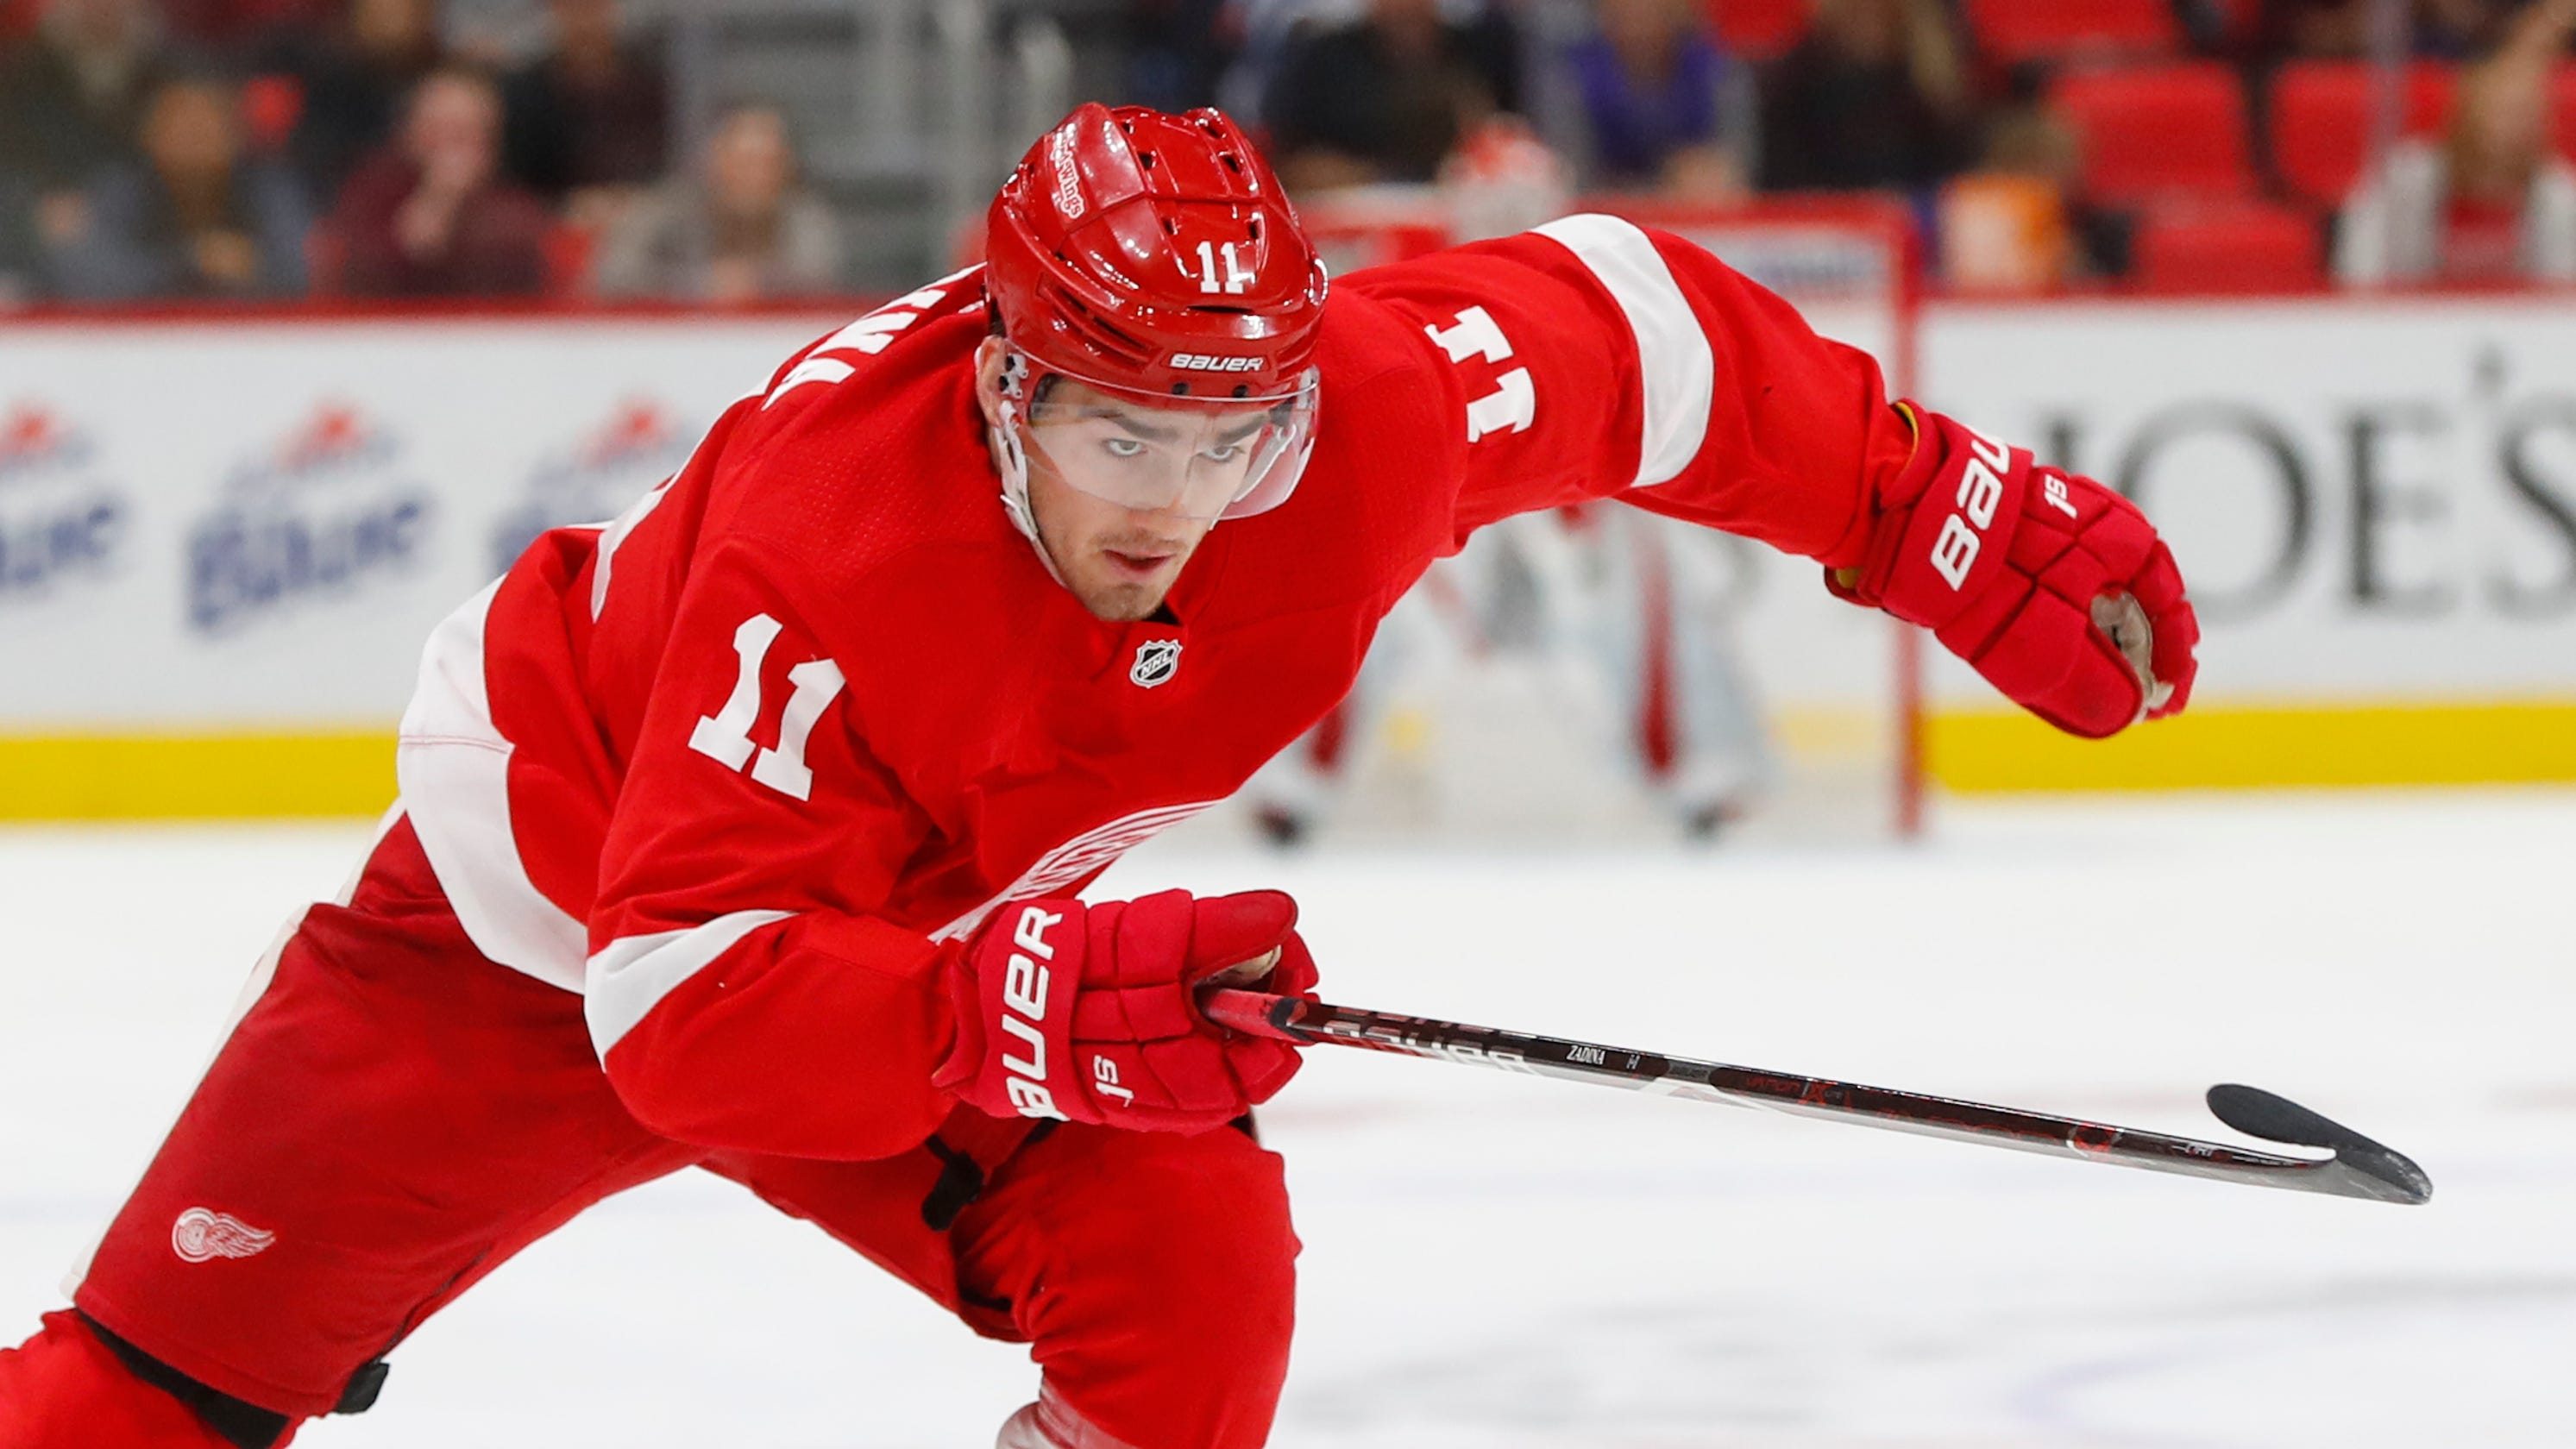 Detroit Red Wings roster decisions should favor prospects